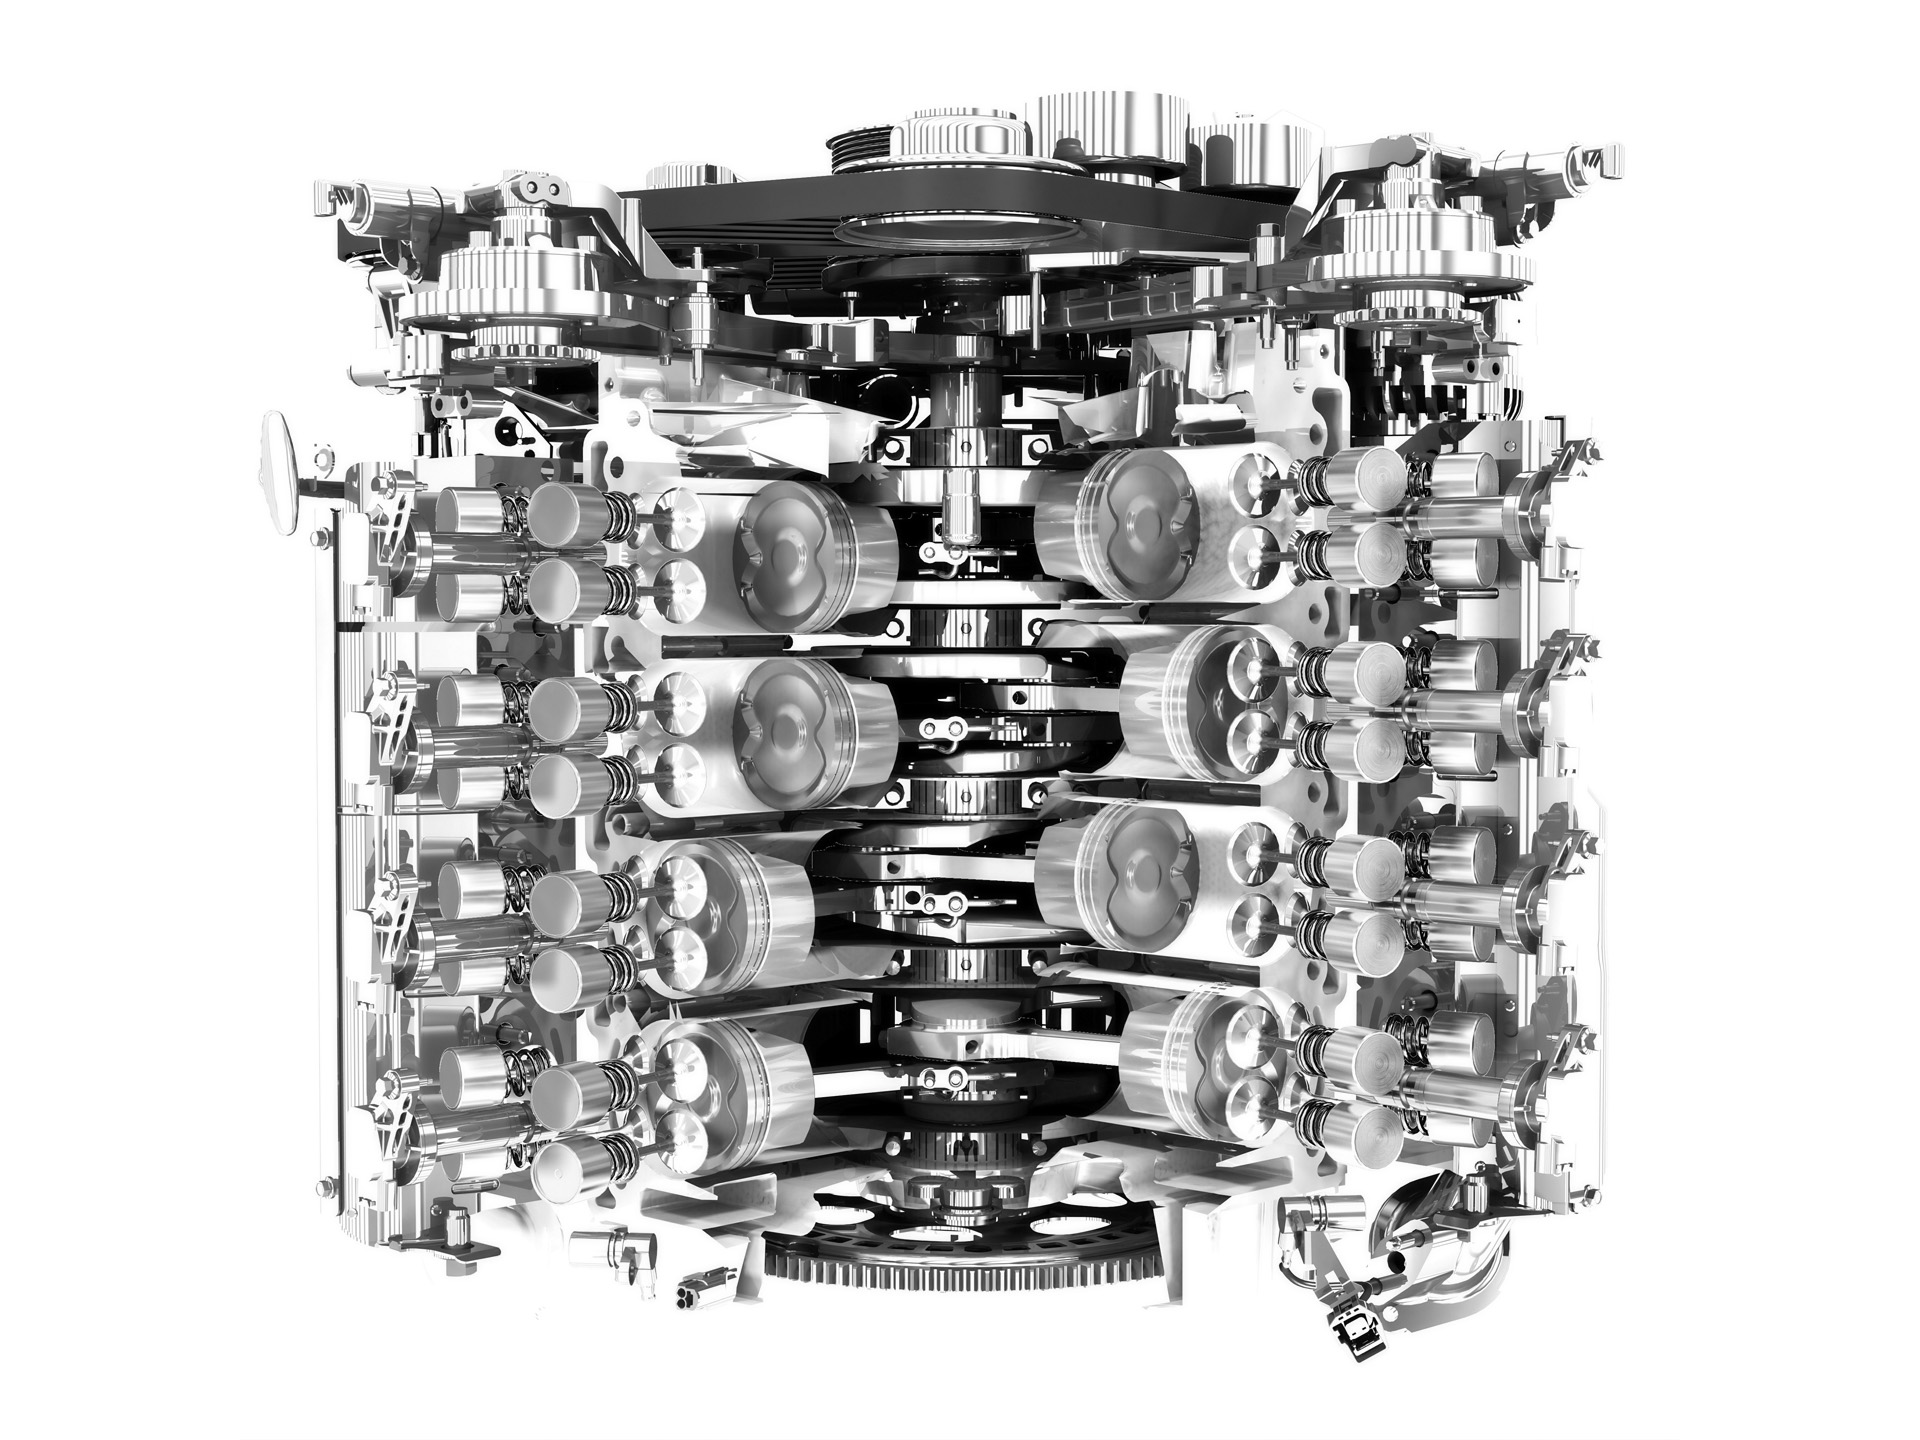 Sample P0248 Engine